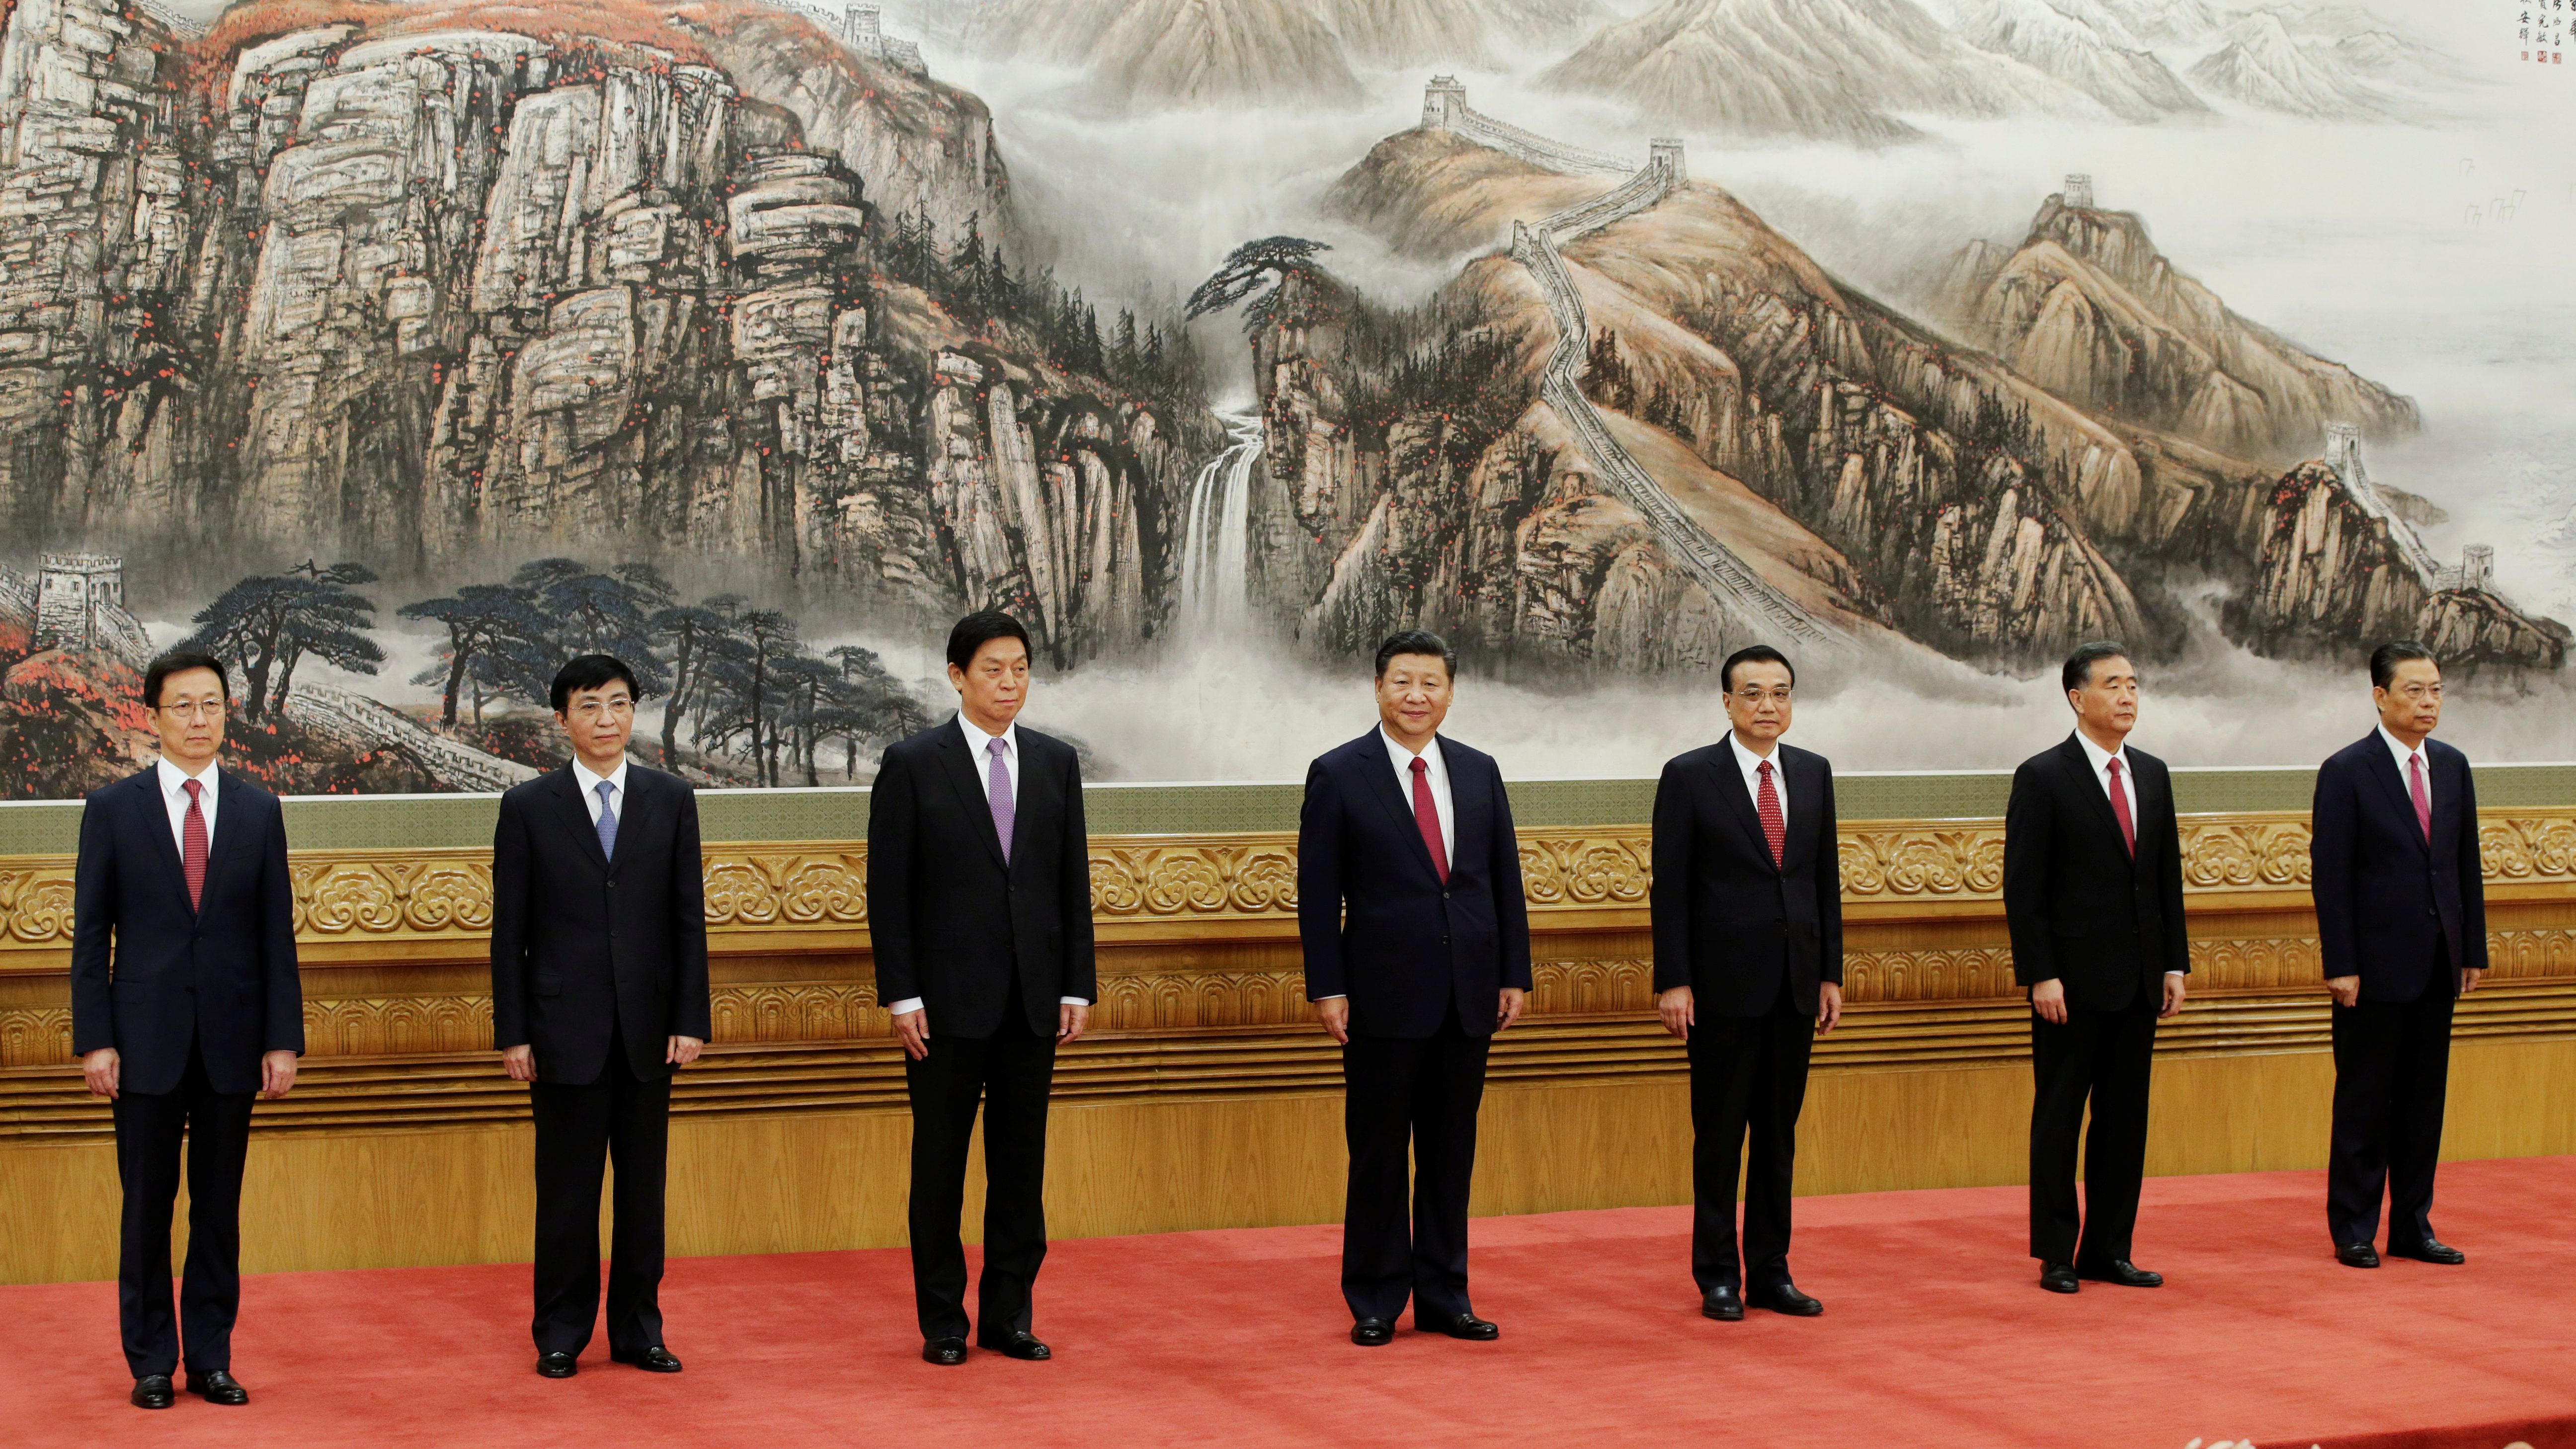 19th Politburo of the Communist Party of China